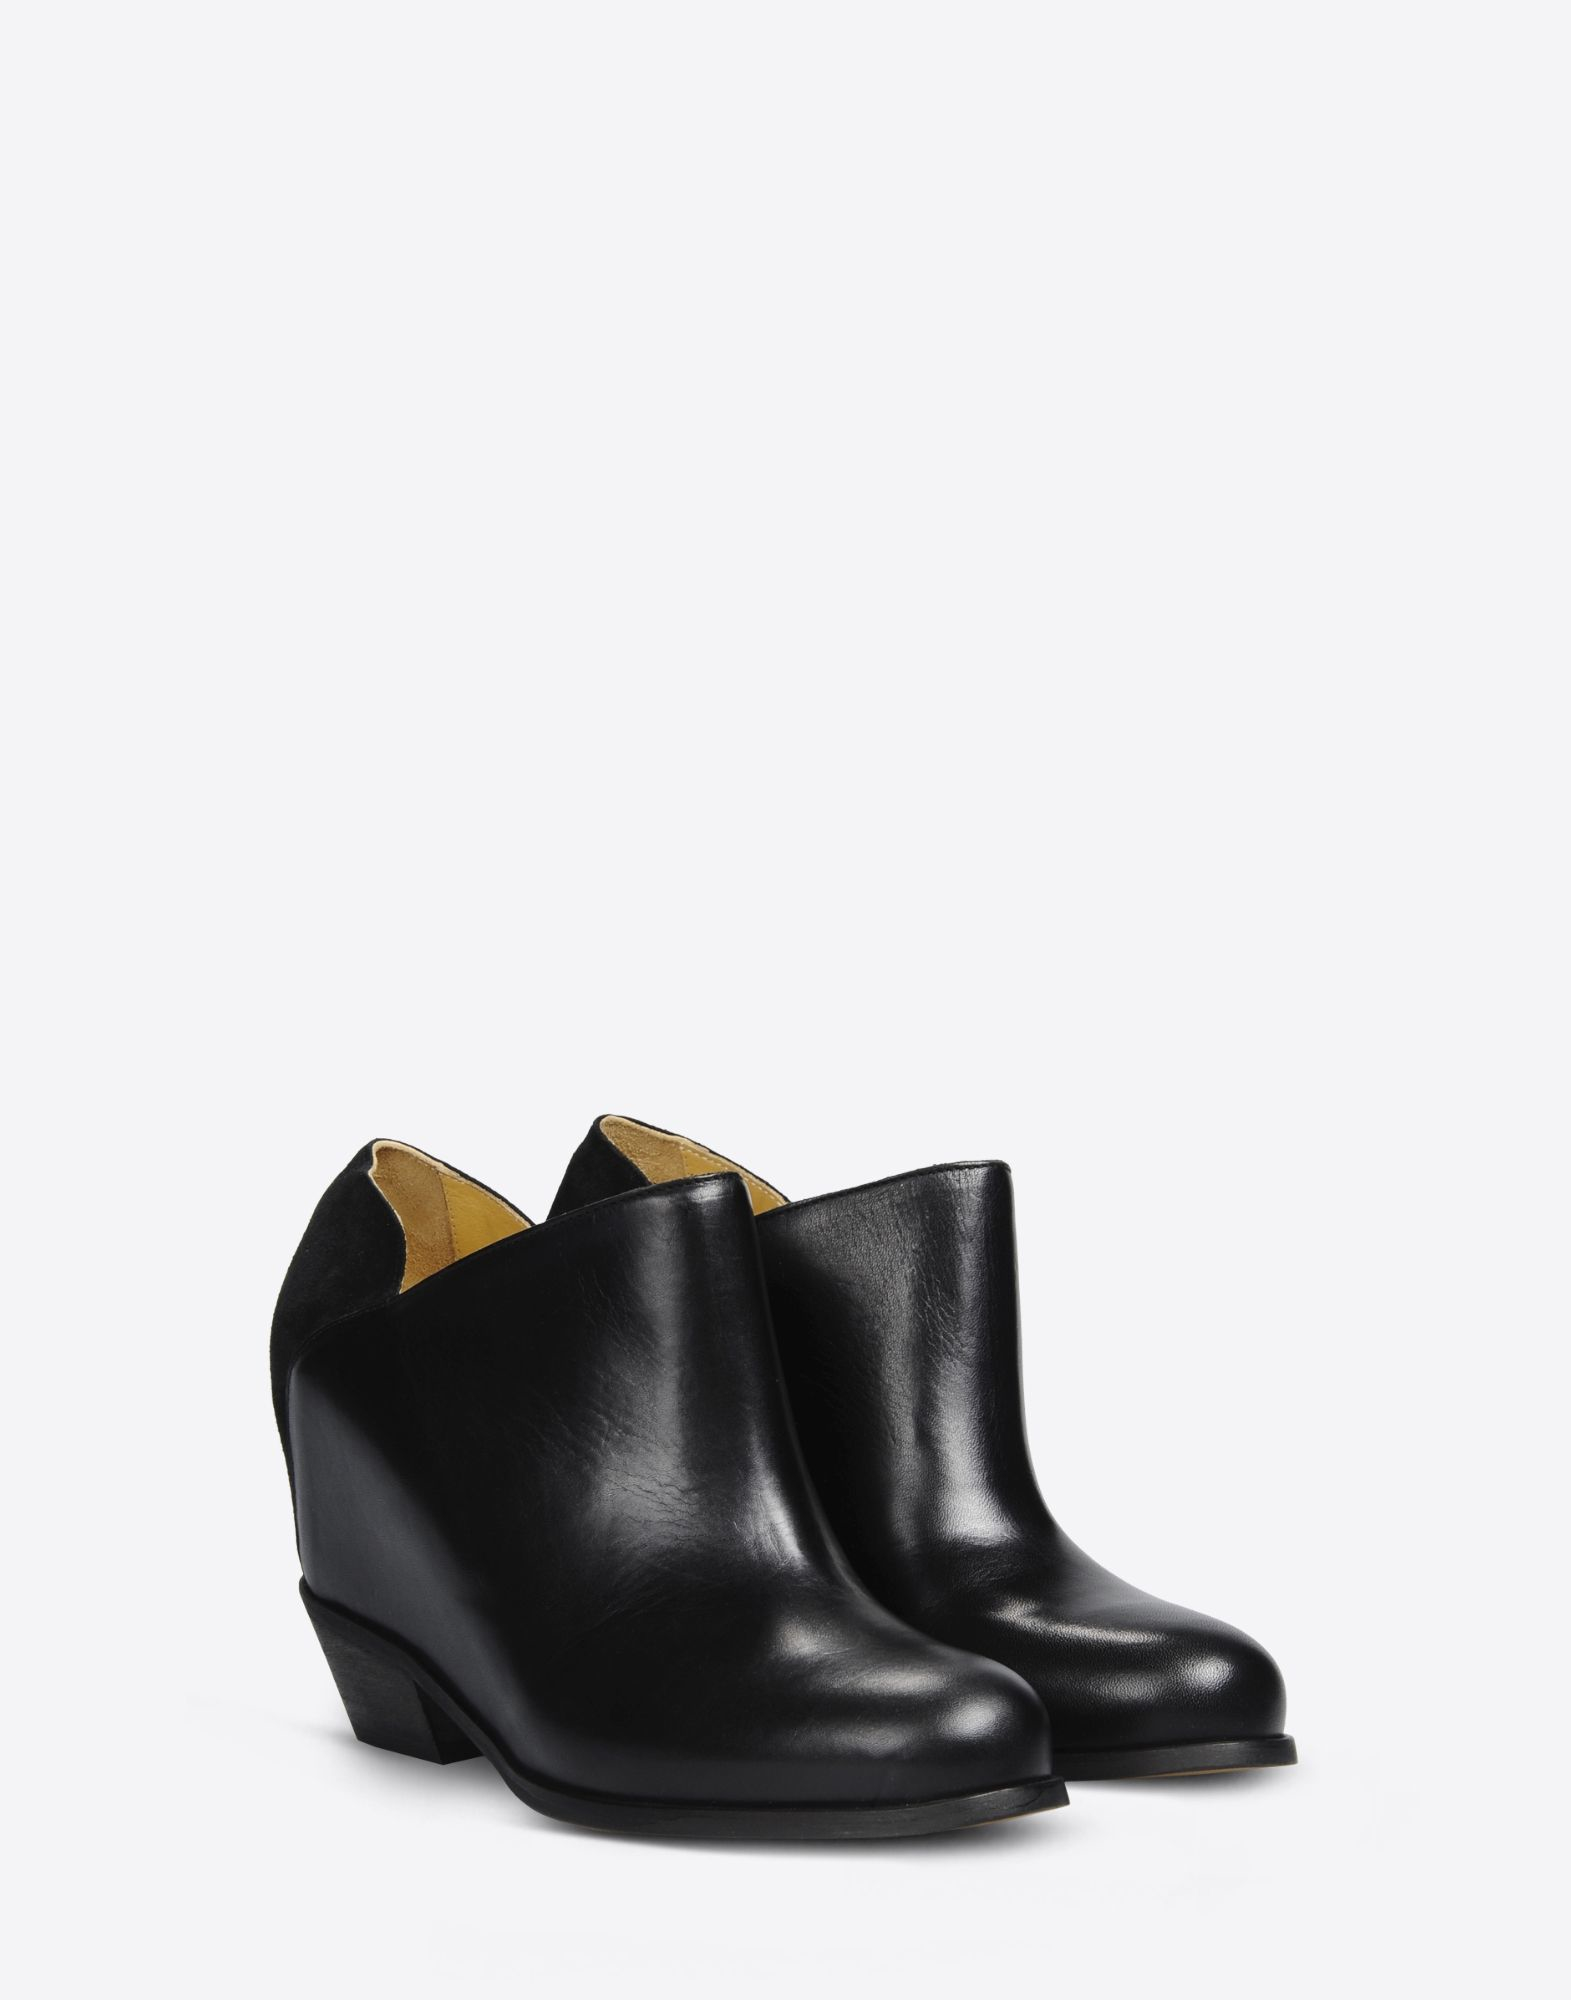 Maison Margiela low-heel boots ebay sale online cheap official site best place online cheap extremely Z0551h